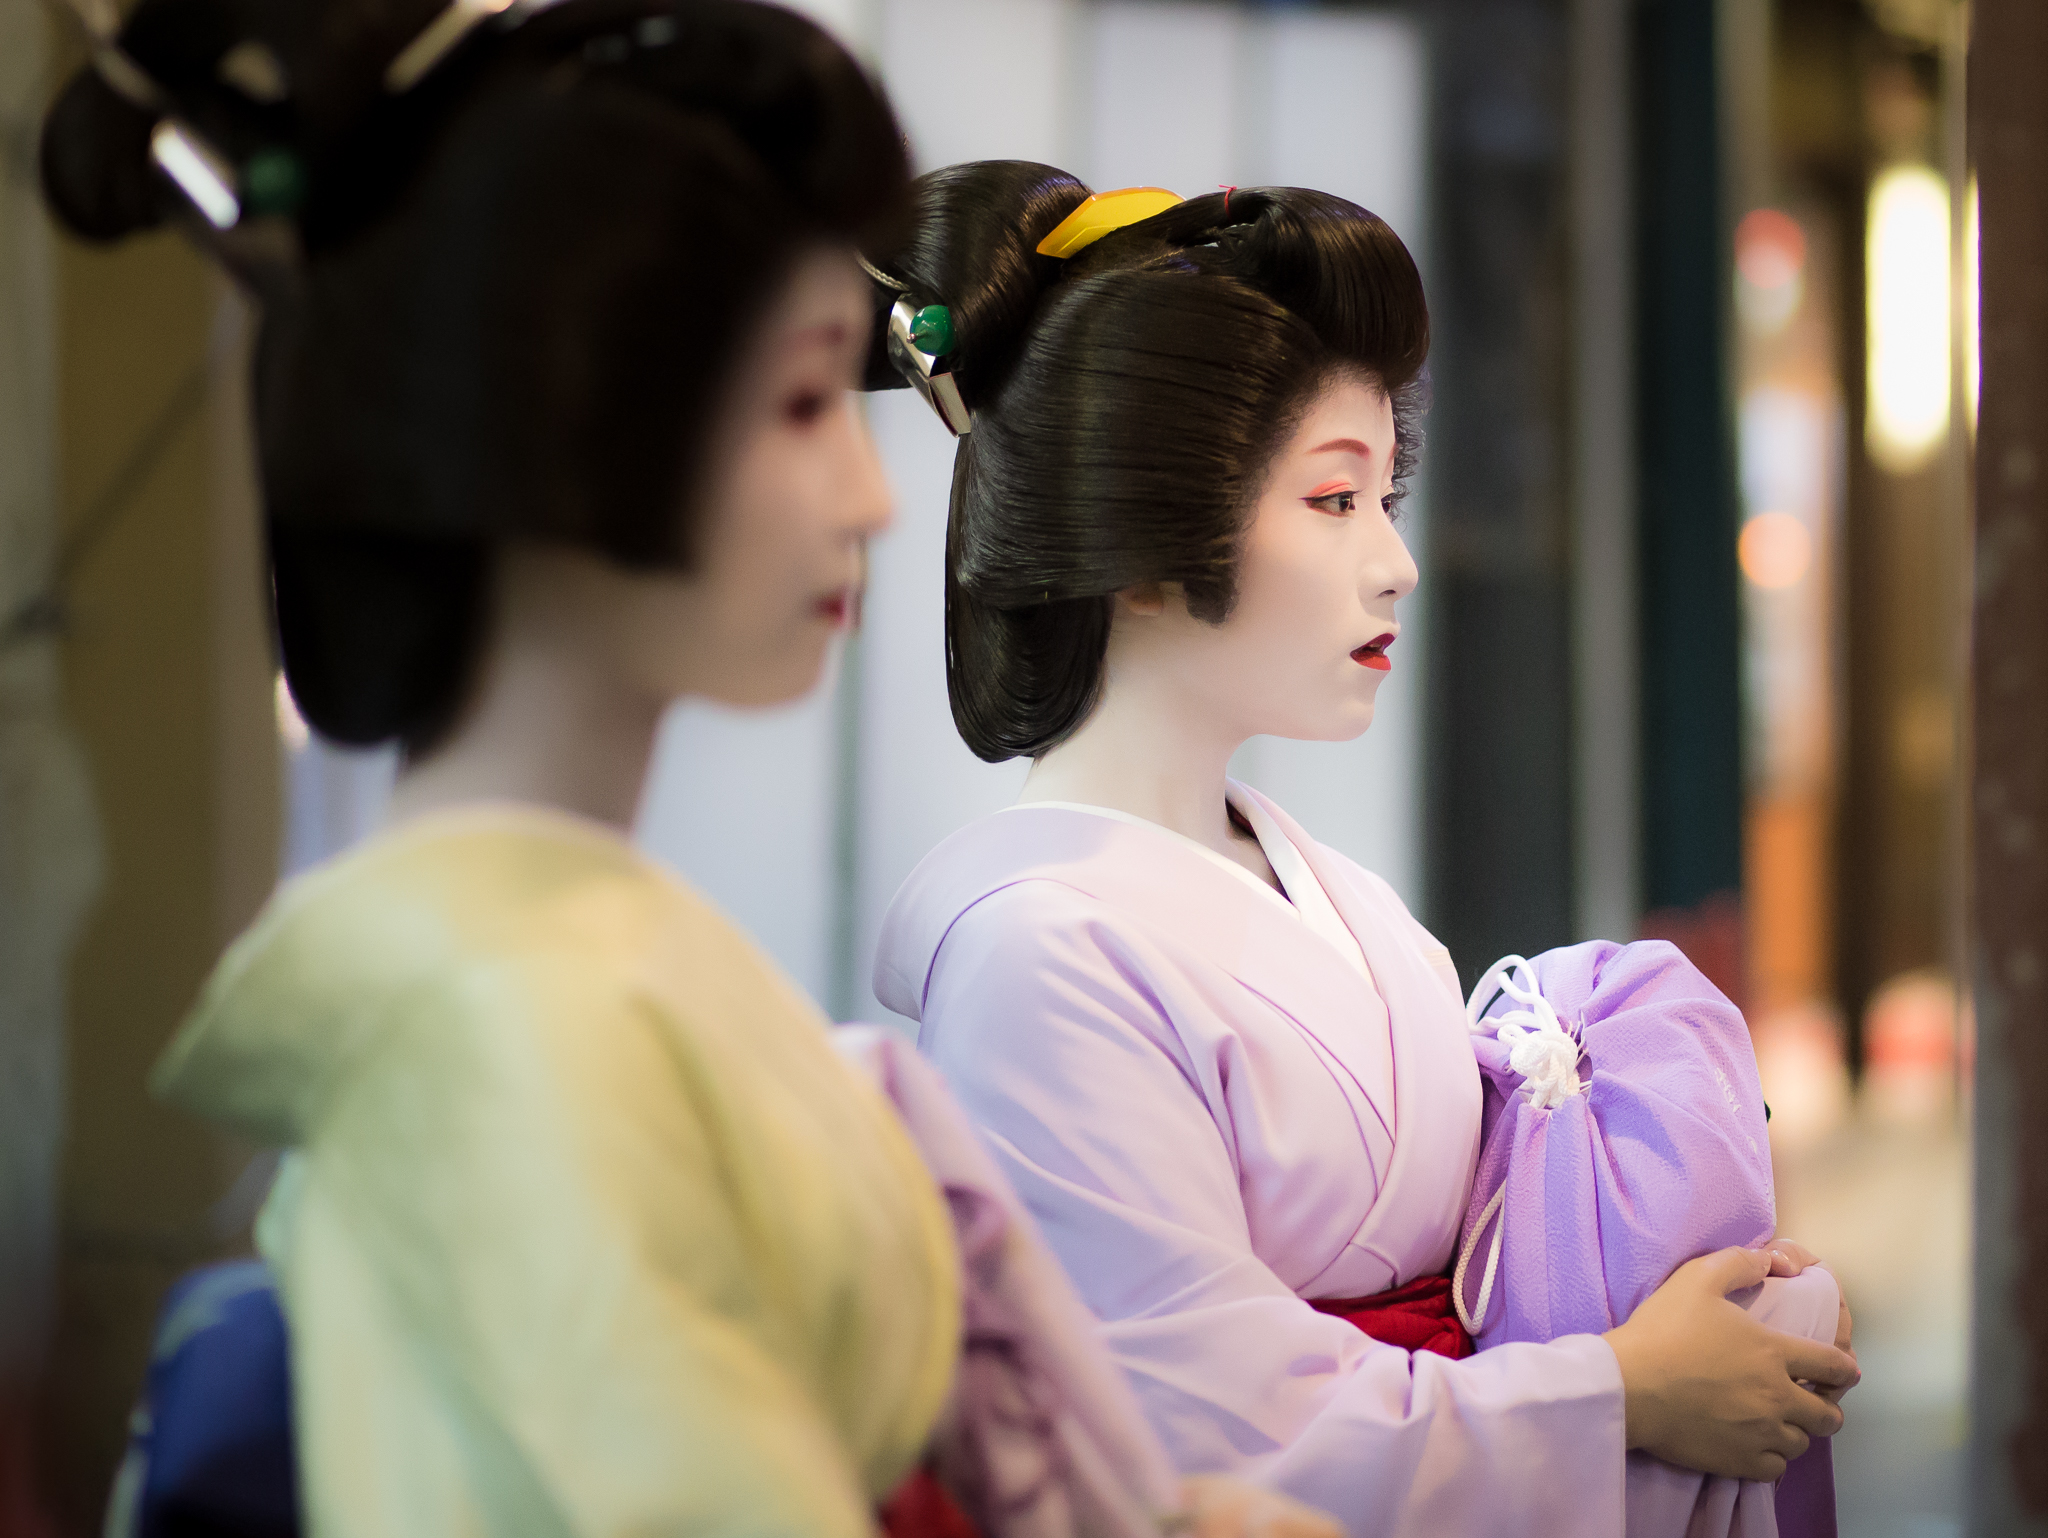 The lonely Geisha